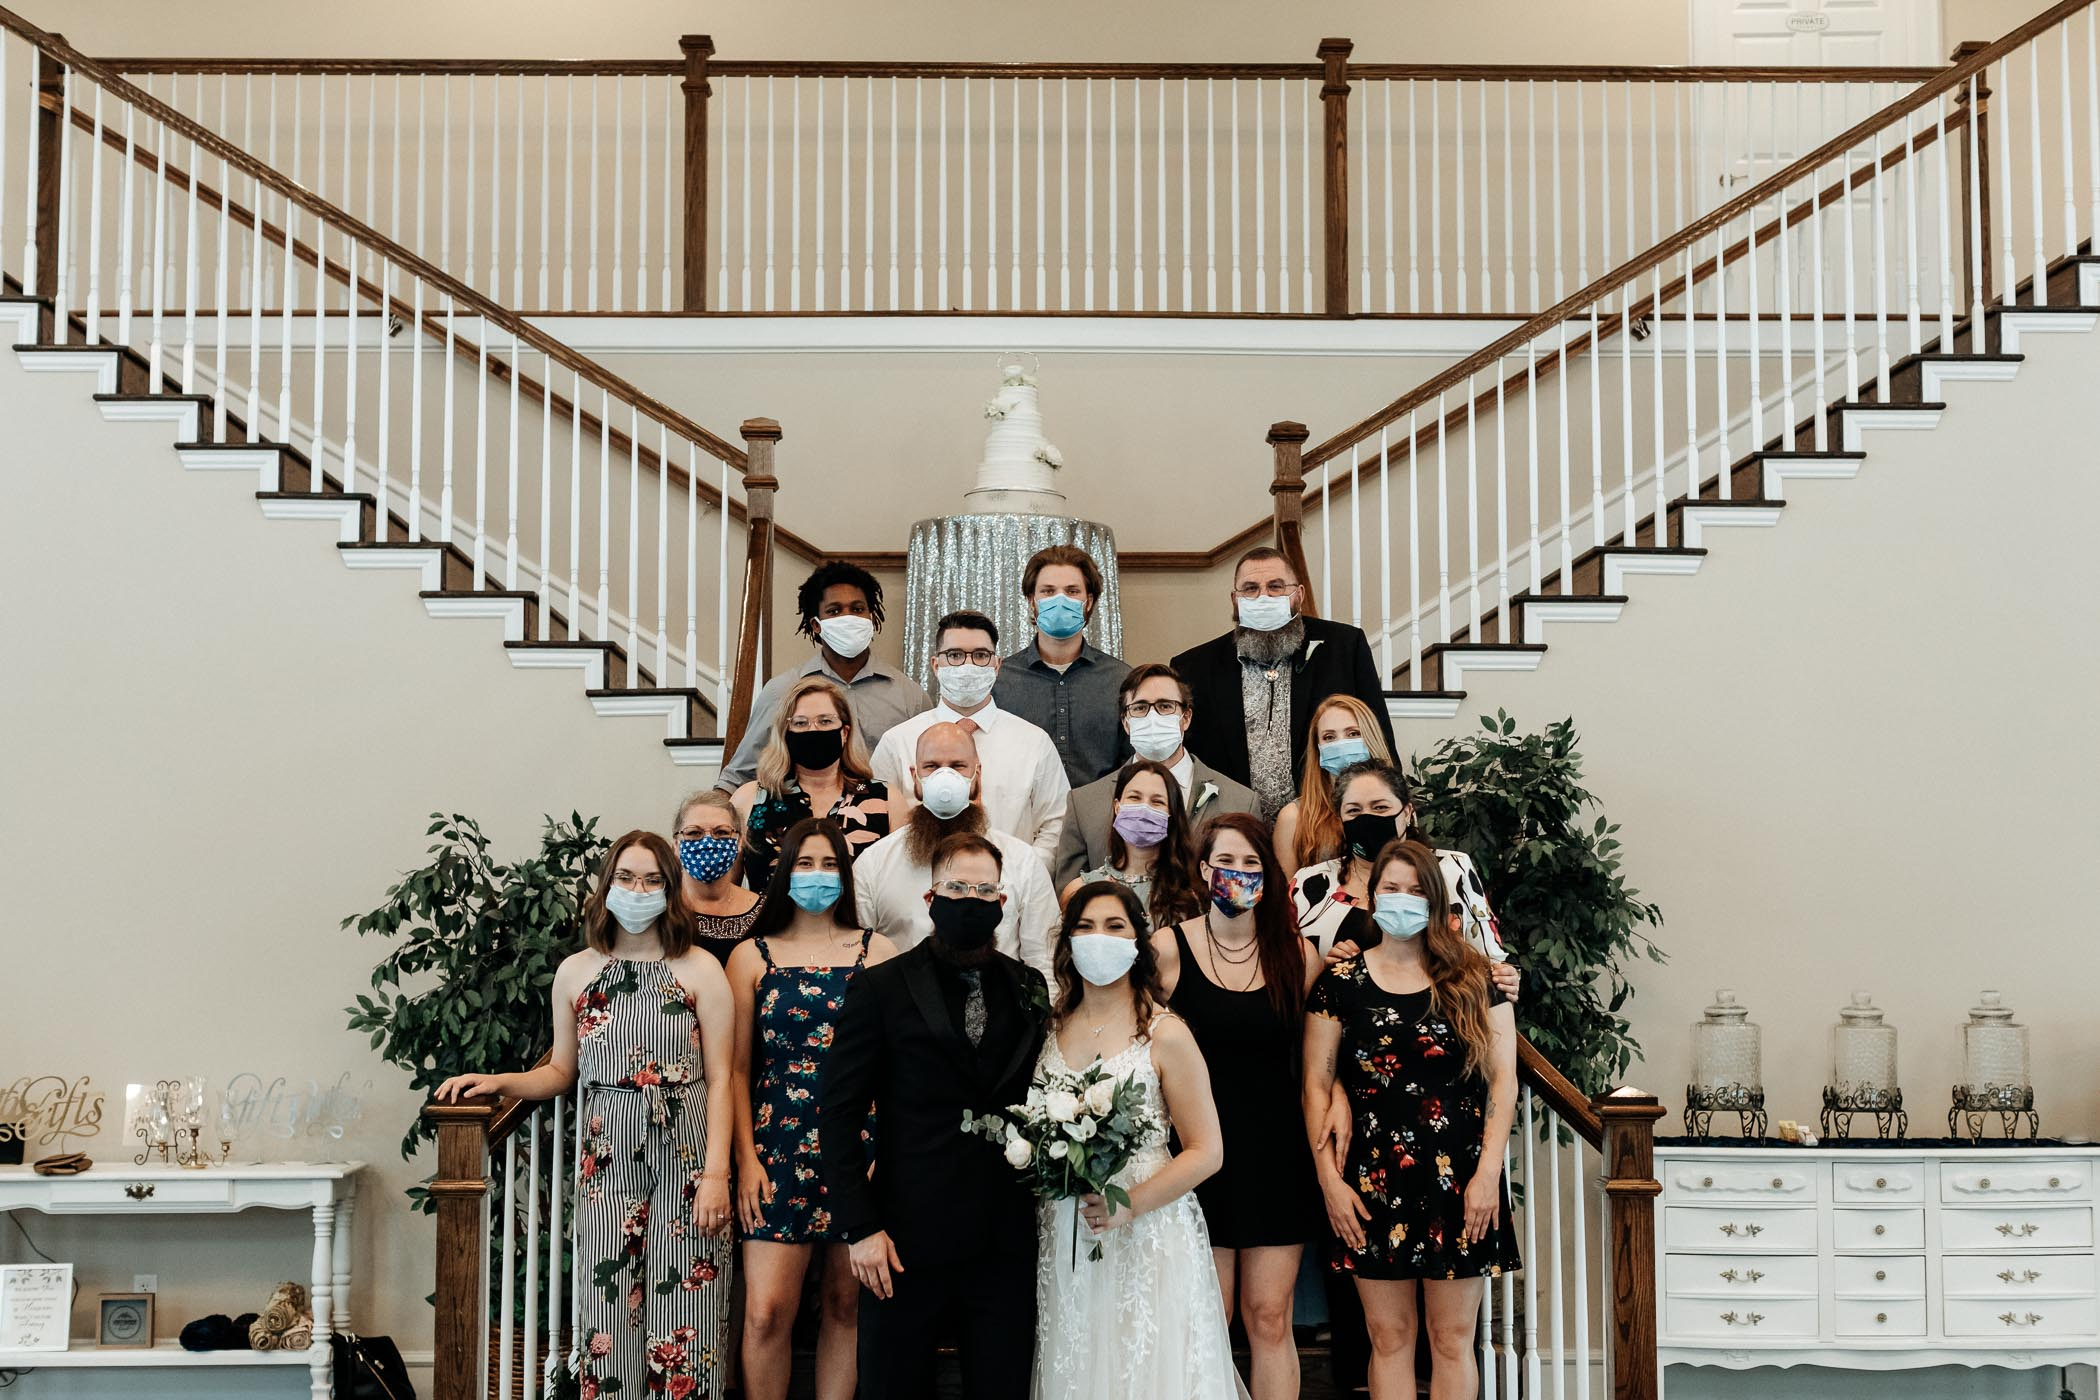 Bride and groom with wedding guests during Covid-19 Pandemic in Texas